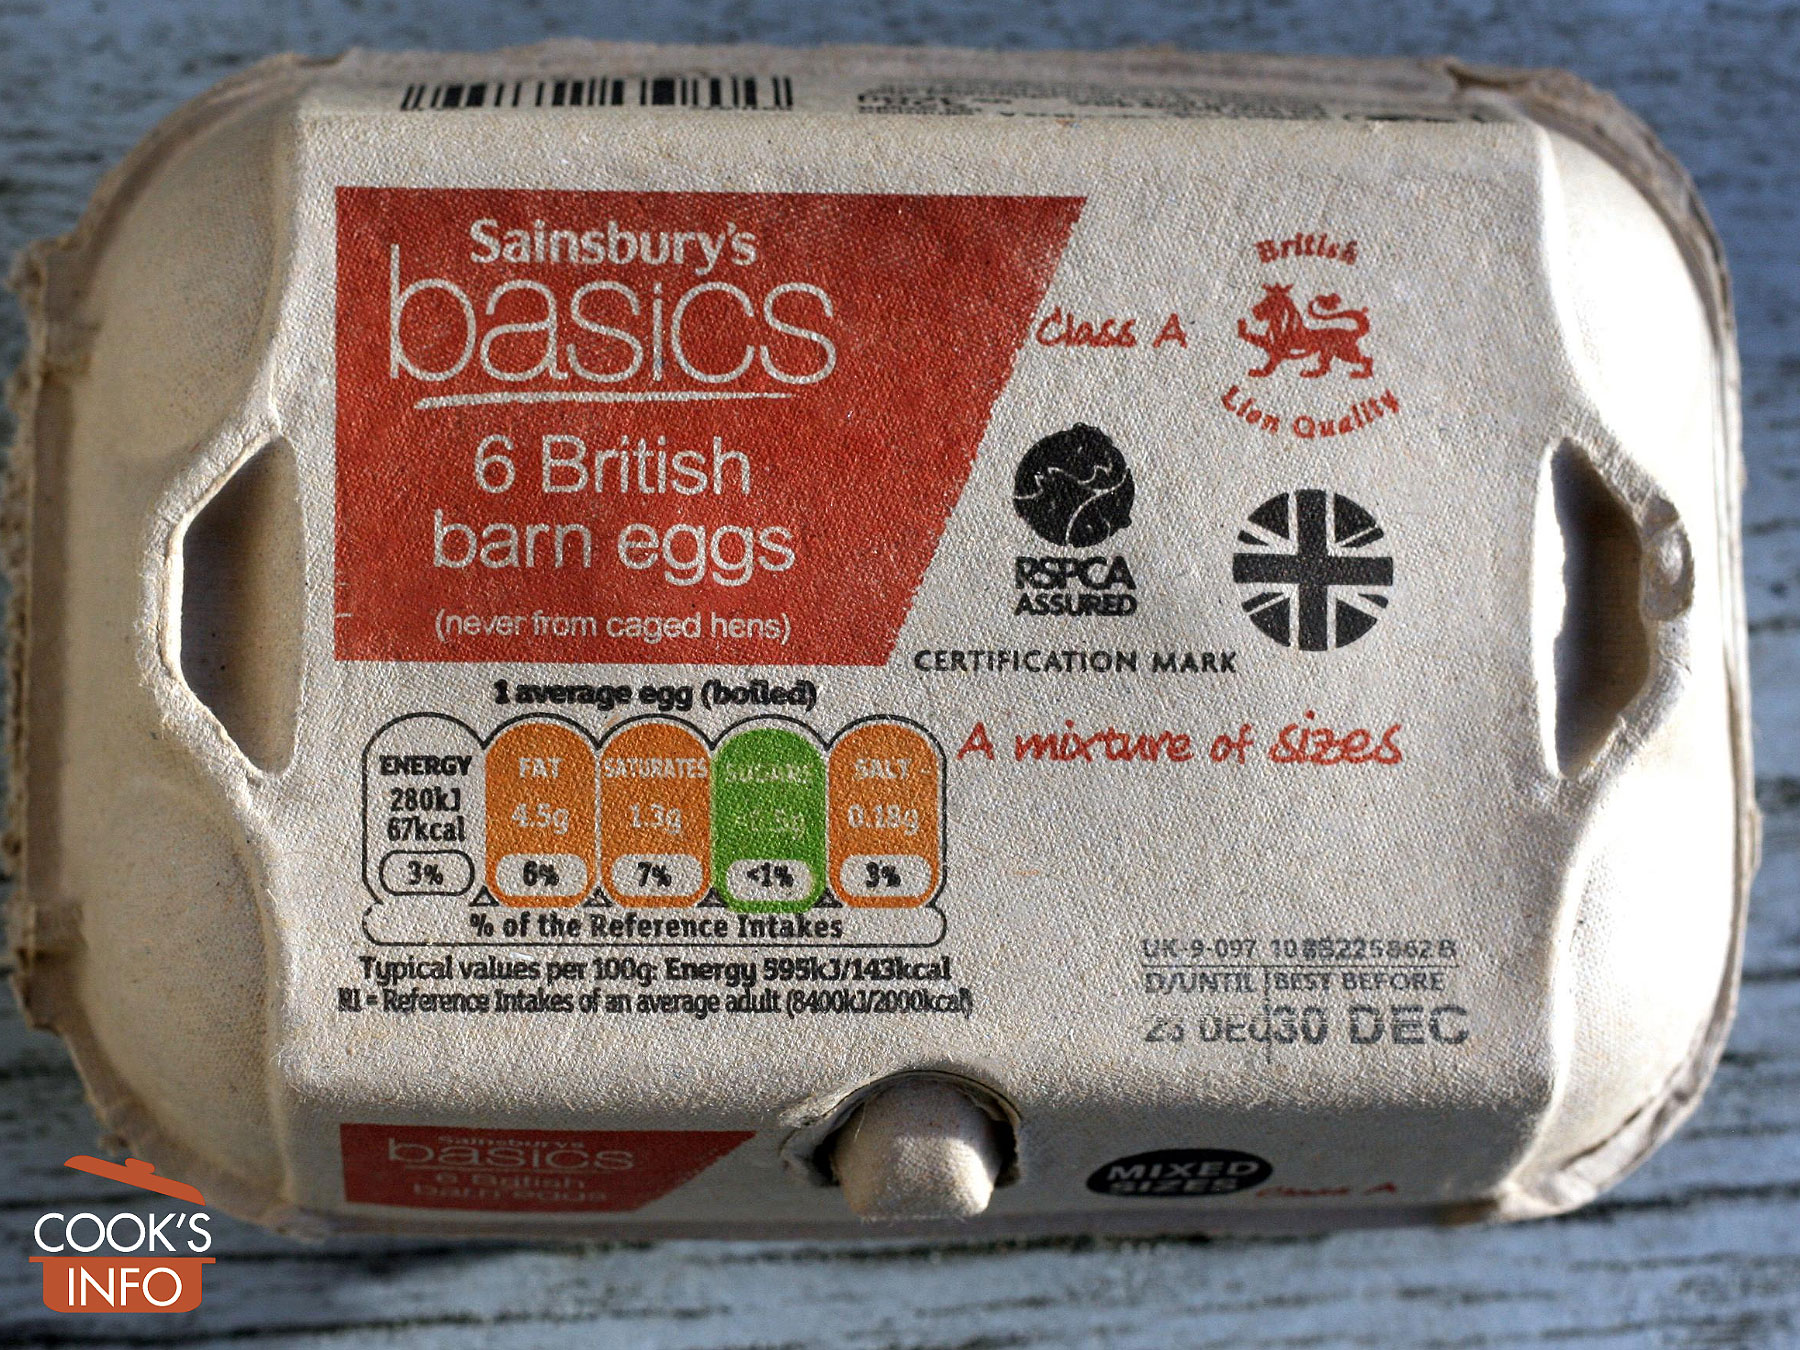 English egg carton with Red Lion stamp on it